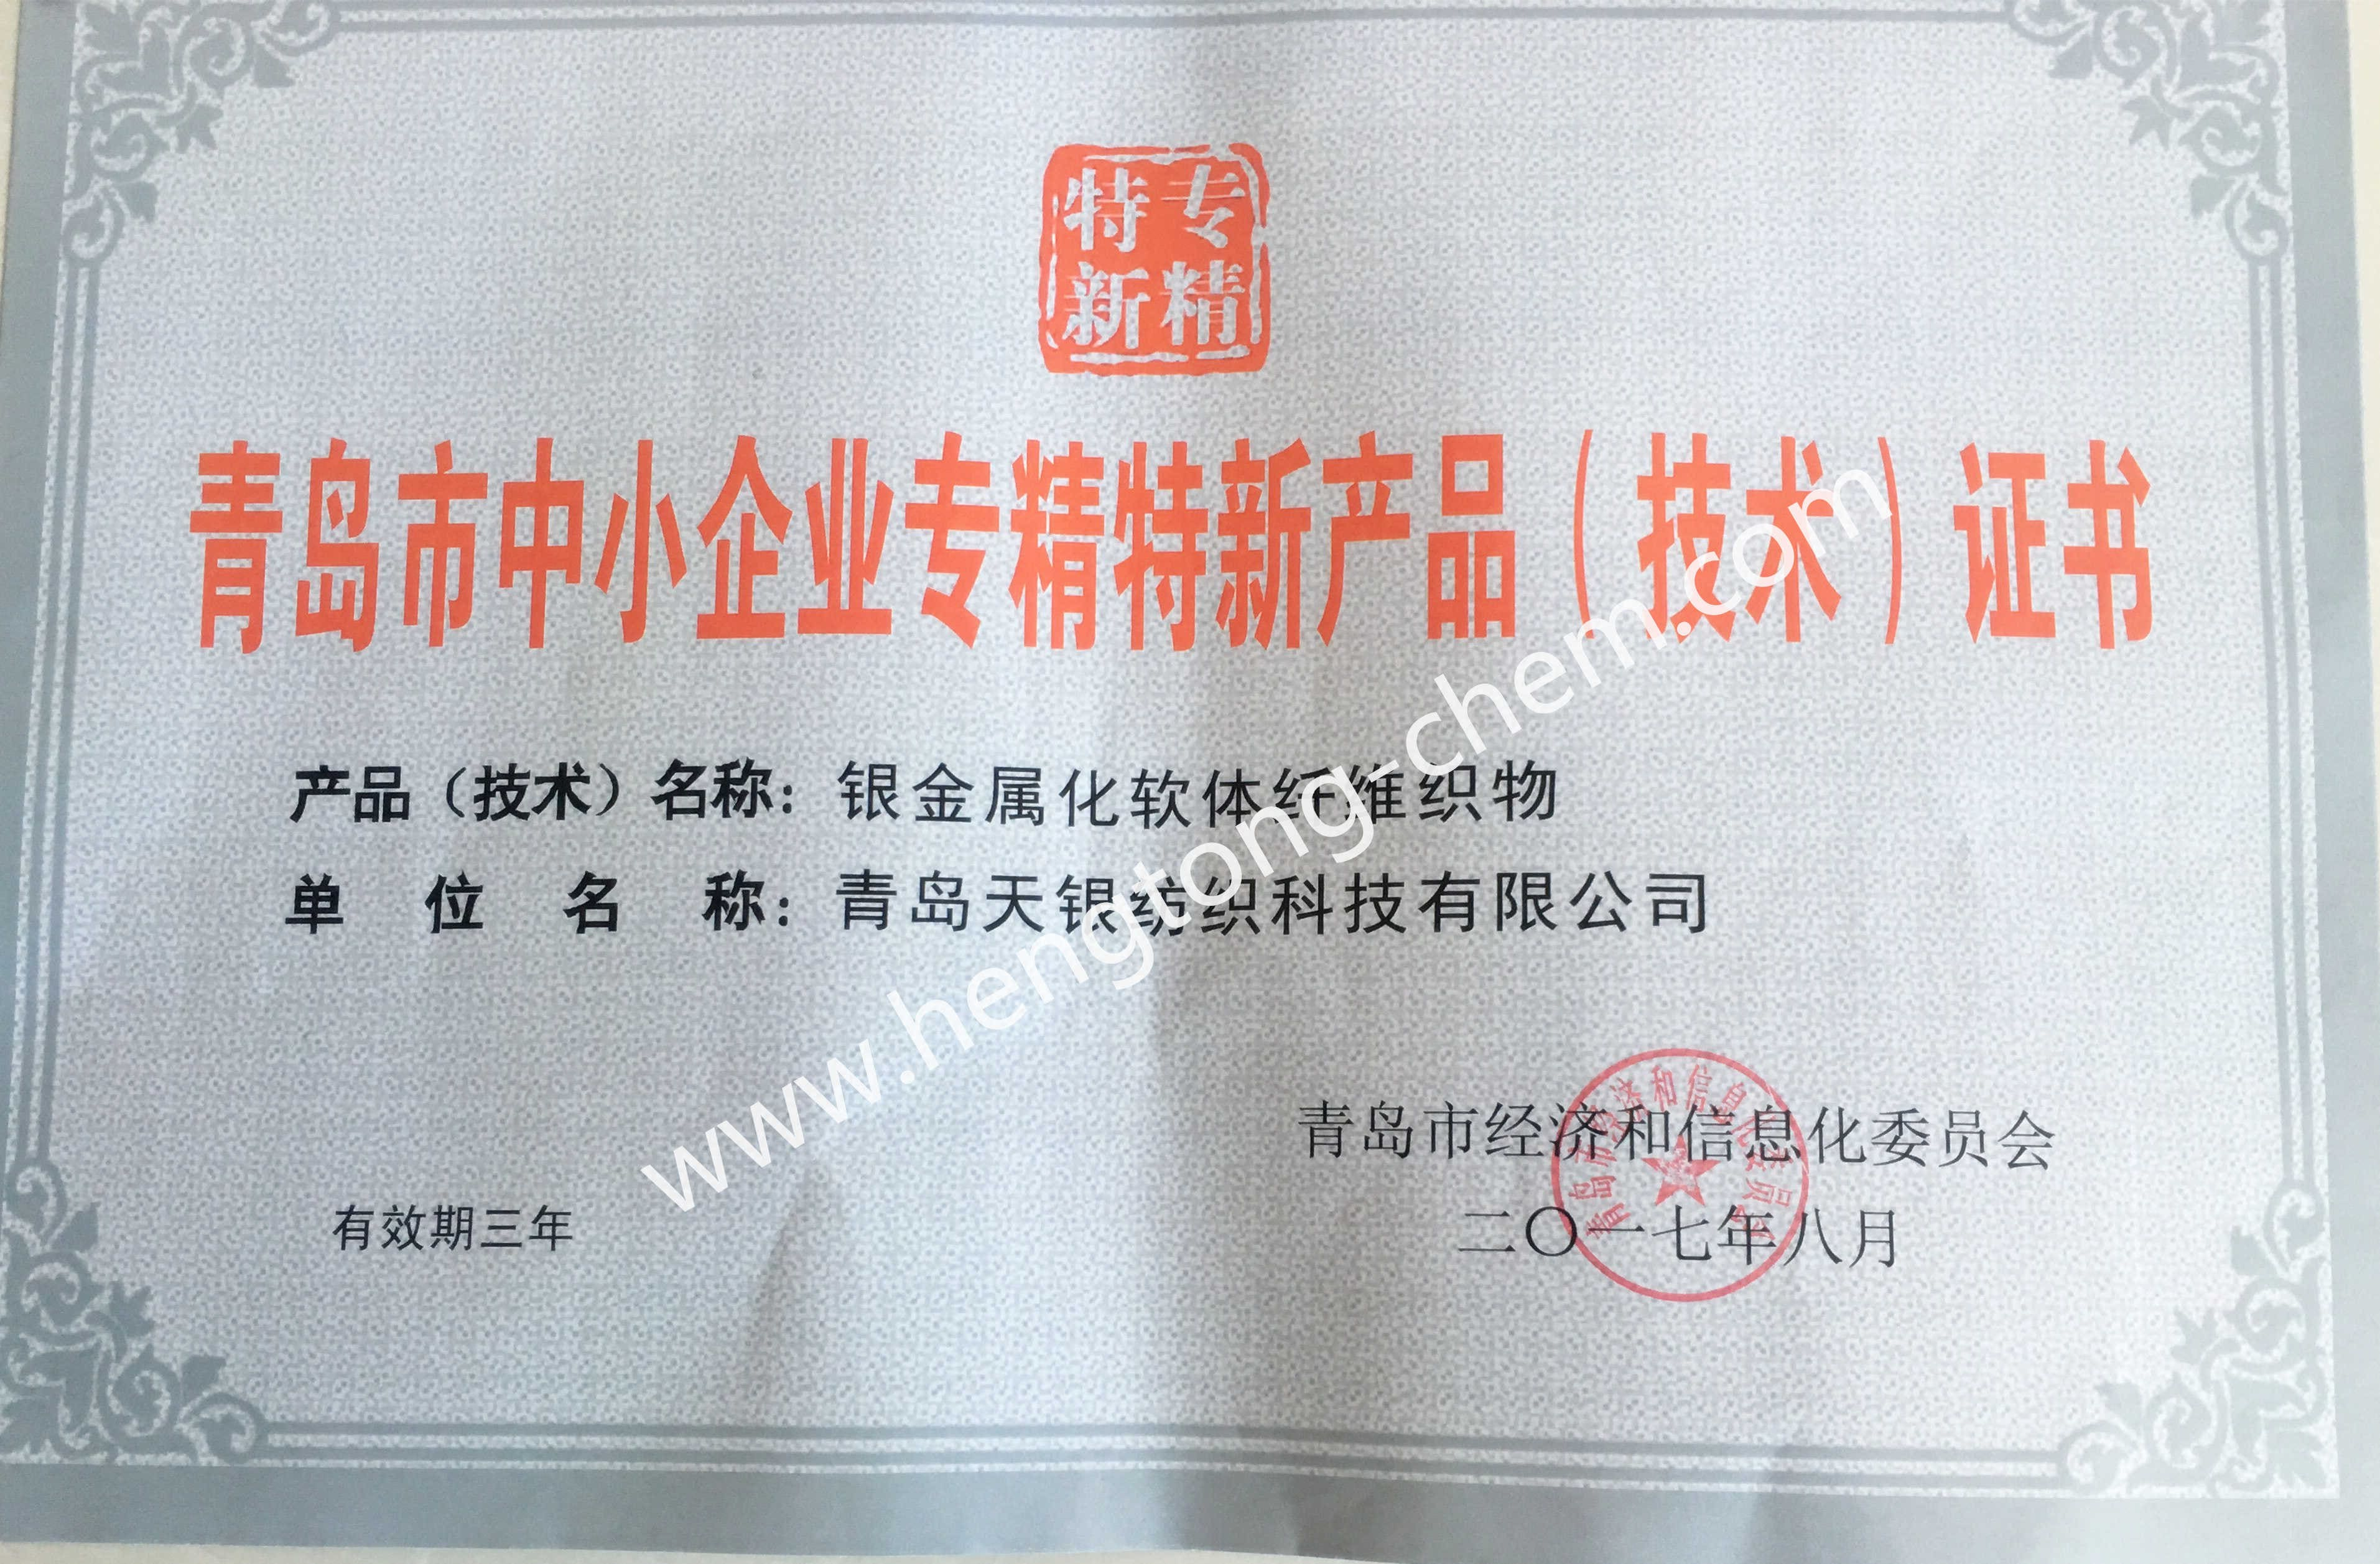 Qingdao small and medium-sized enterprises specialized special new products (technology) certificate